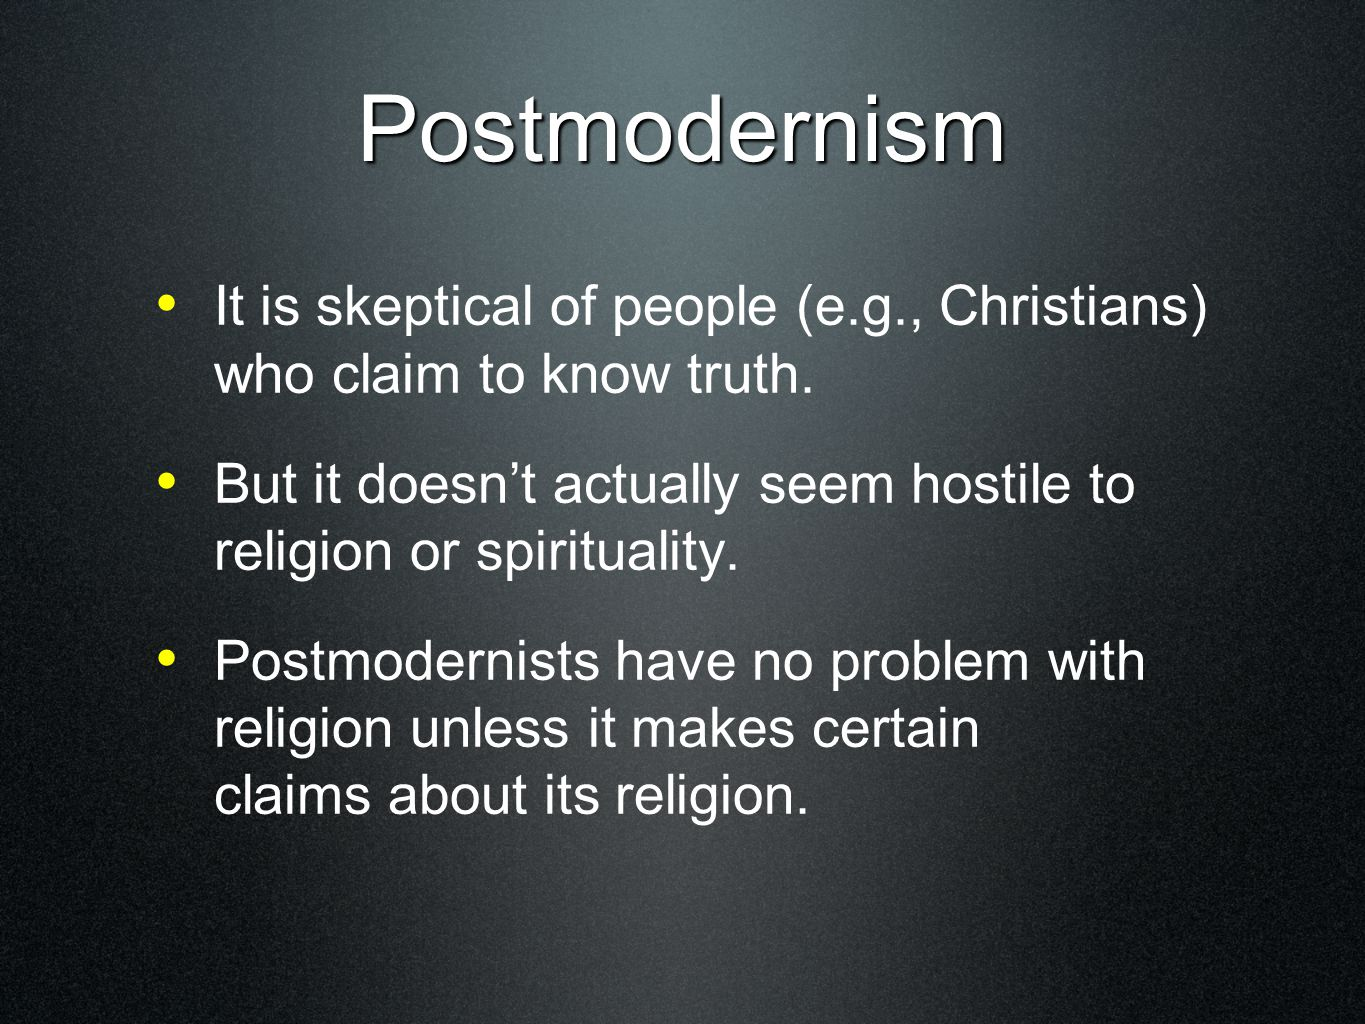 Postmodernism It is skeptical of people (e.g., Christians) who claim to know truth.